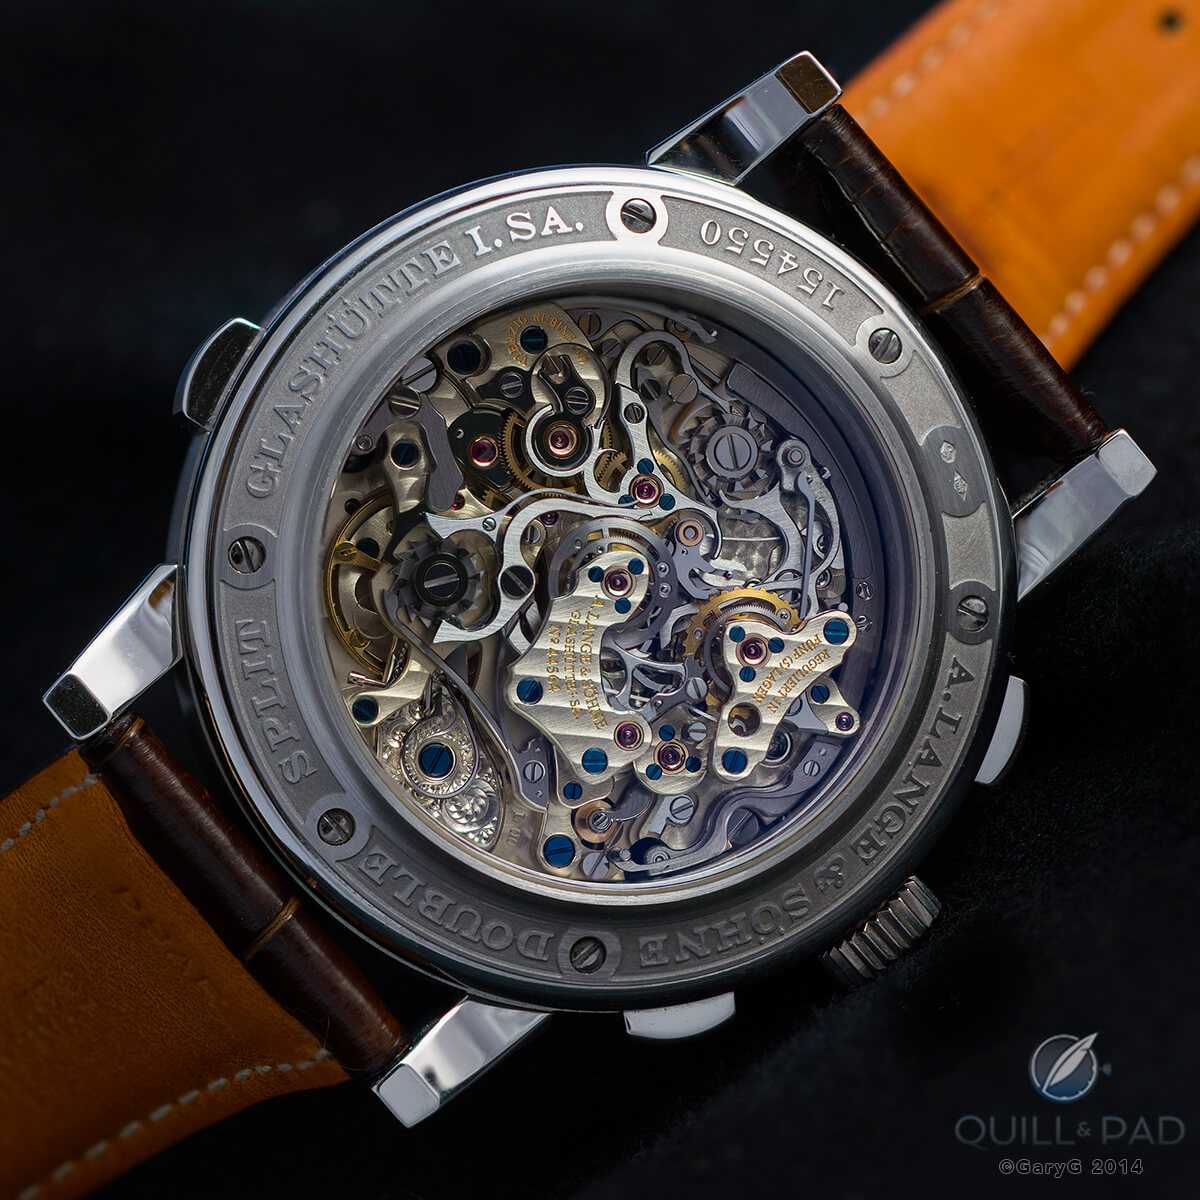 Reverse side of the A. Lange & Söhne Double Split with deep relief bezel engraving